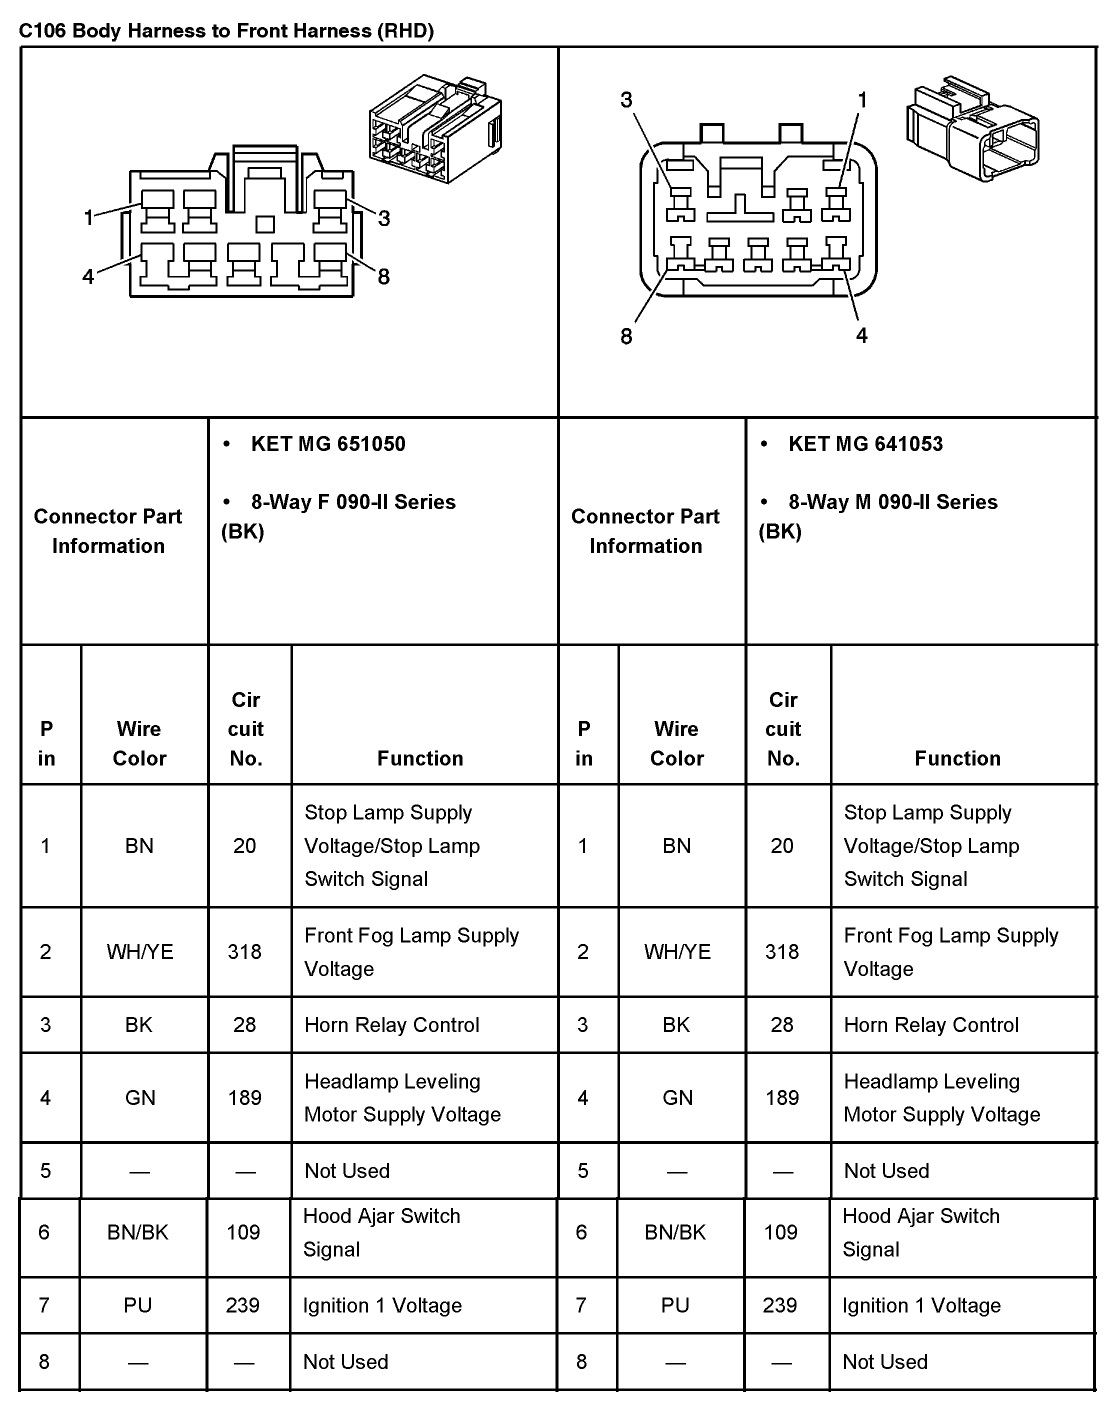 2005 Aveo Master Connector List And Diagrams 2004 Chevy Bose Wiring Diagram